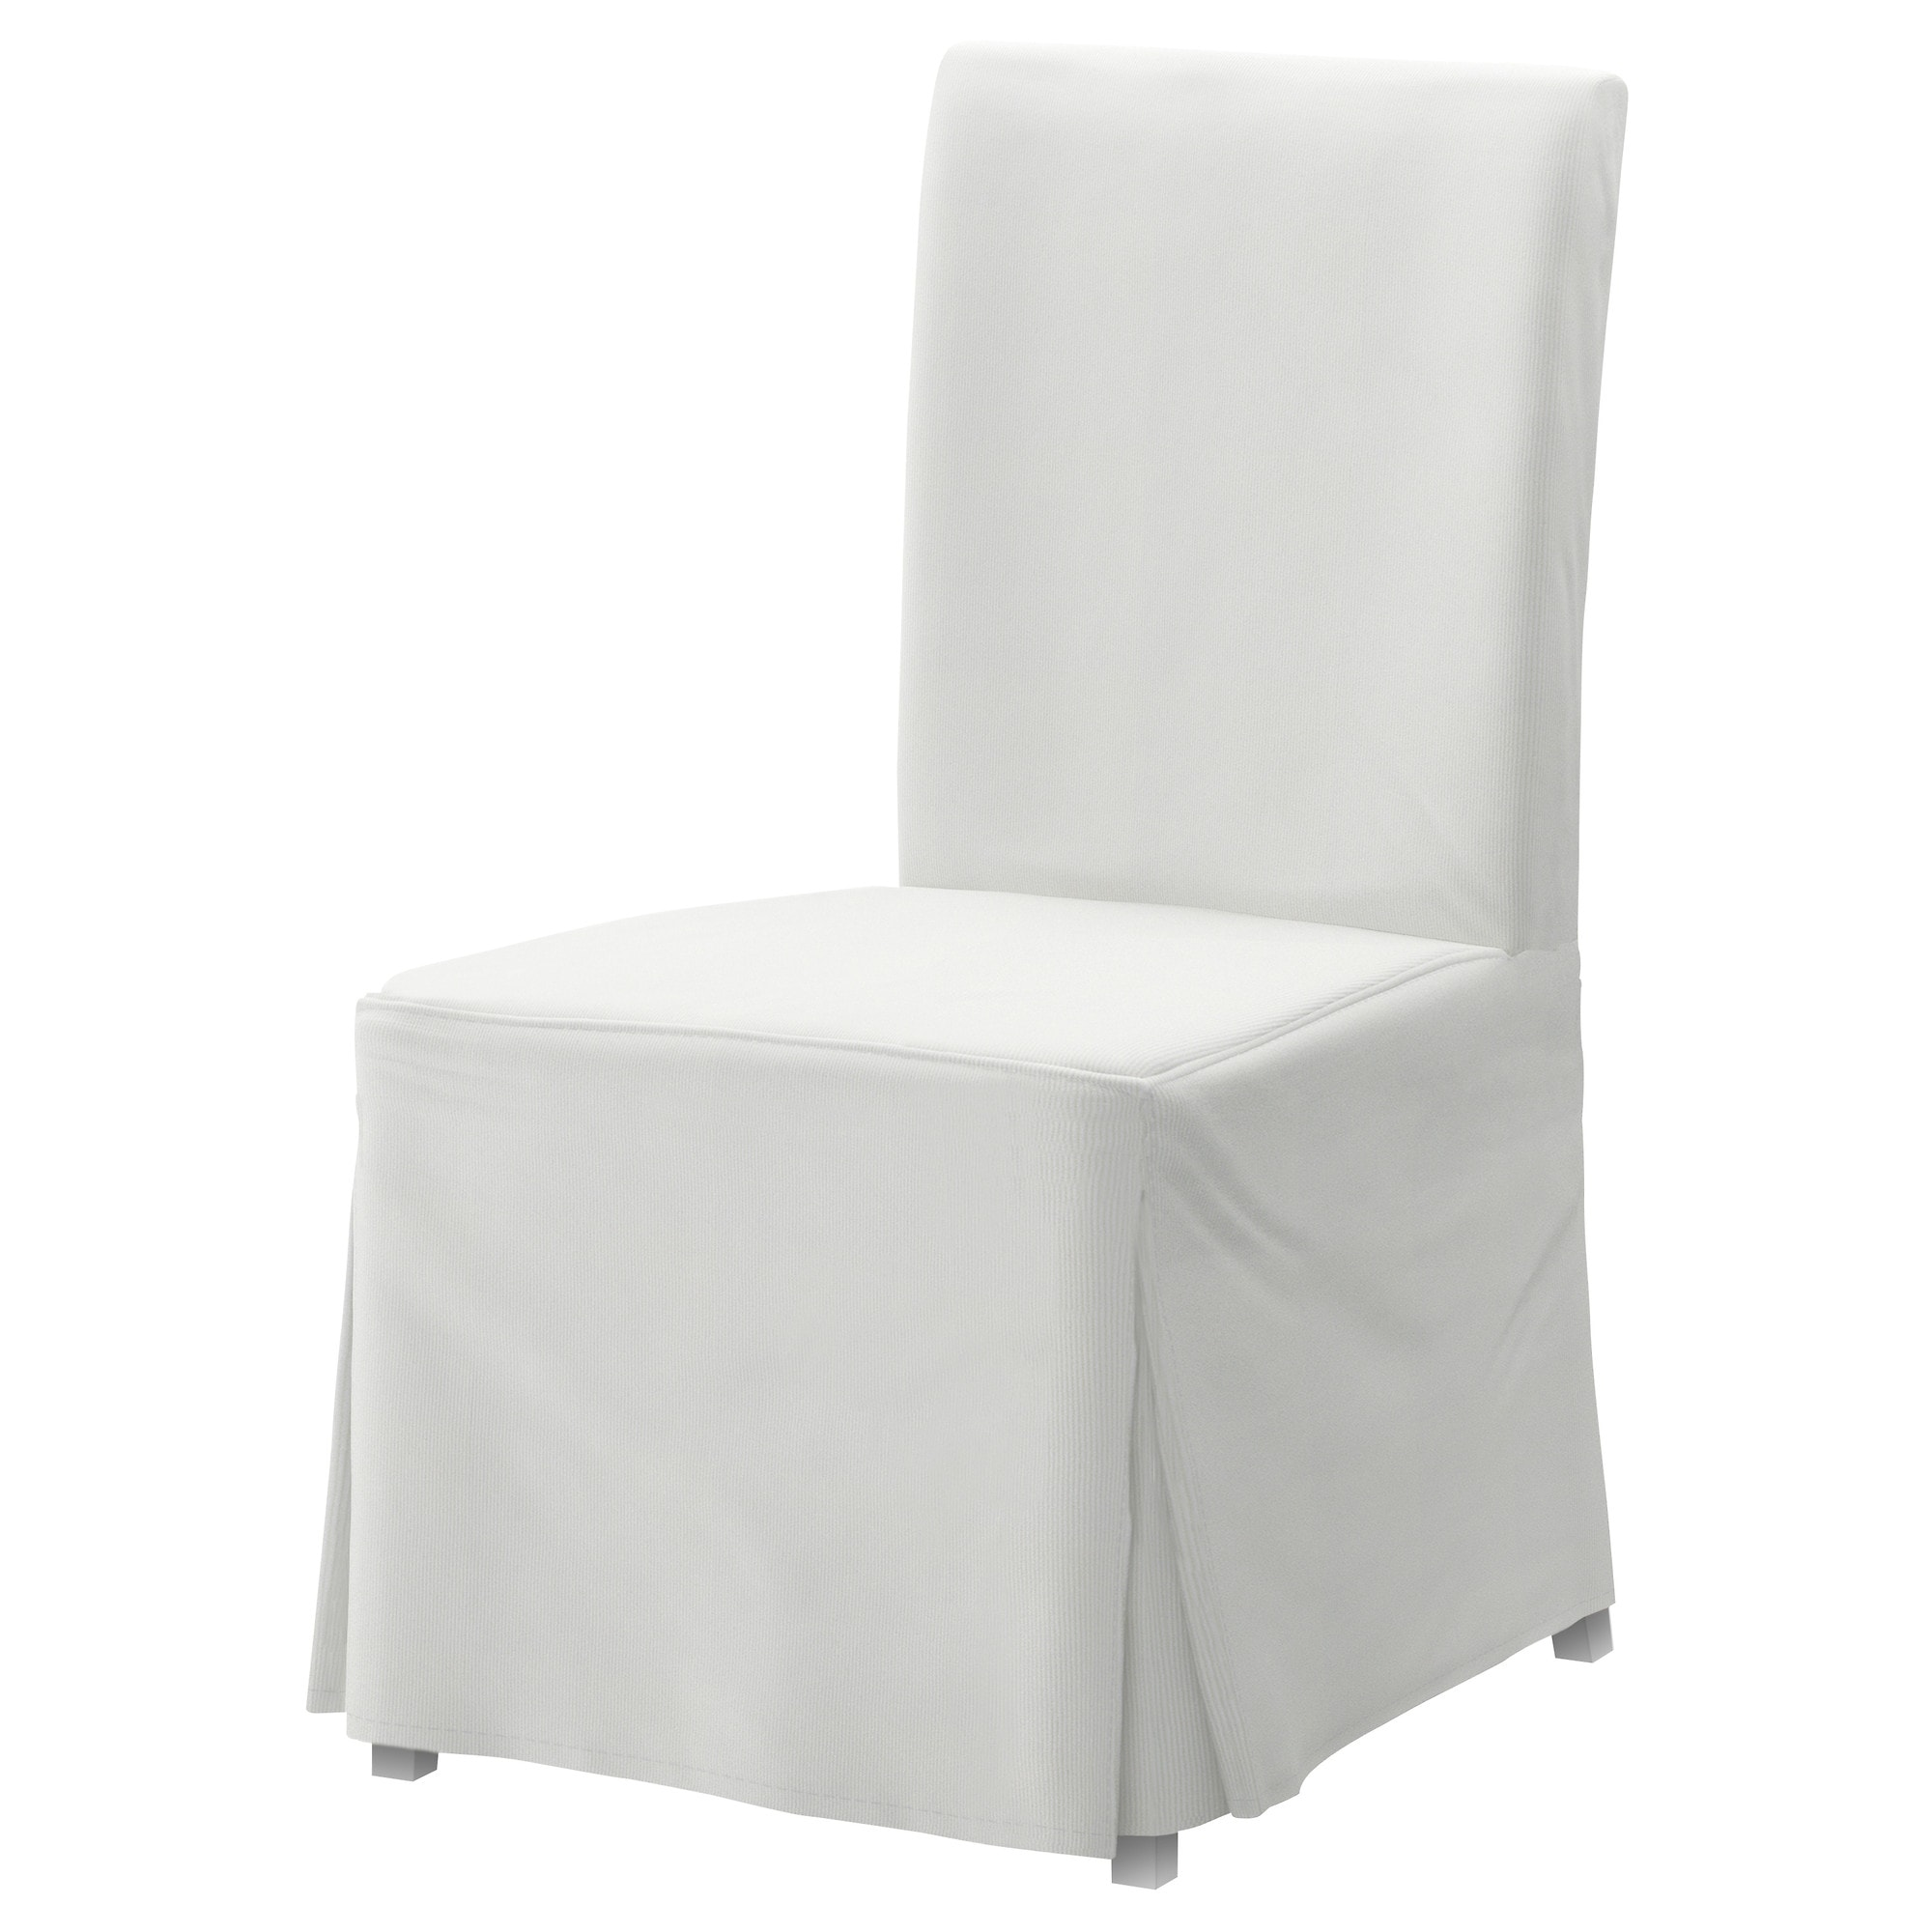 Superb HENRIKSDAL Chair With Long Cover   Blekinge White, White   IKEA